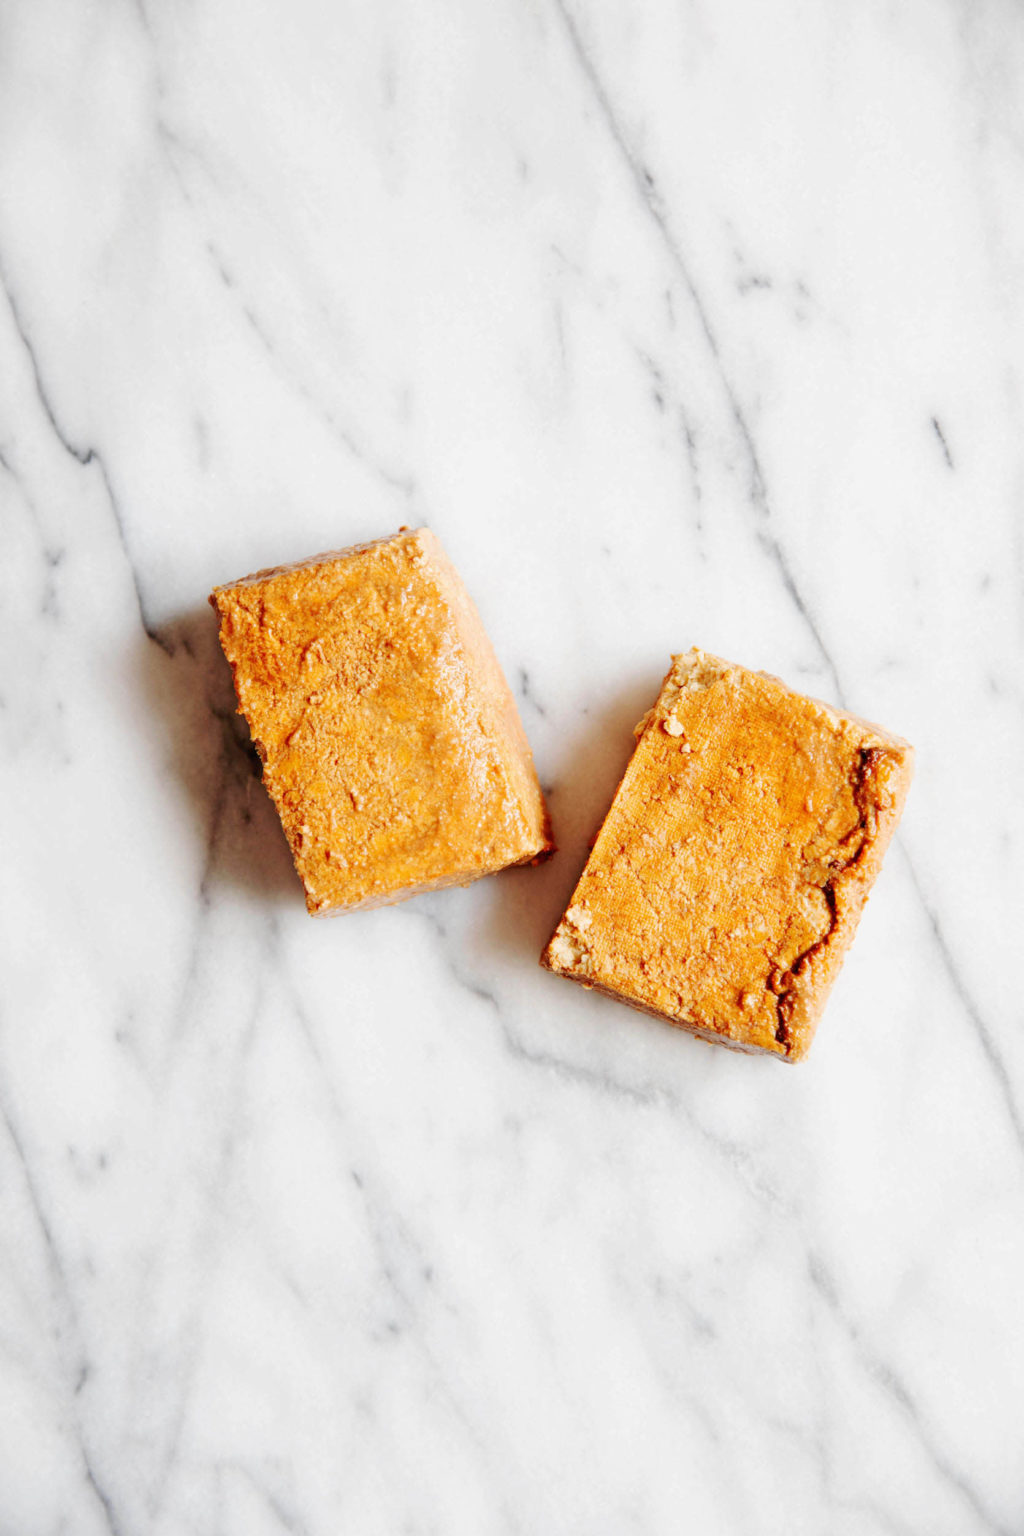 Two blocks of marinated, baked tofu rest on a marble surface.